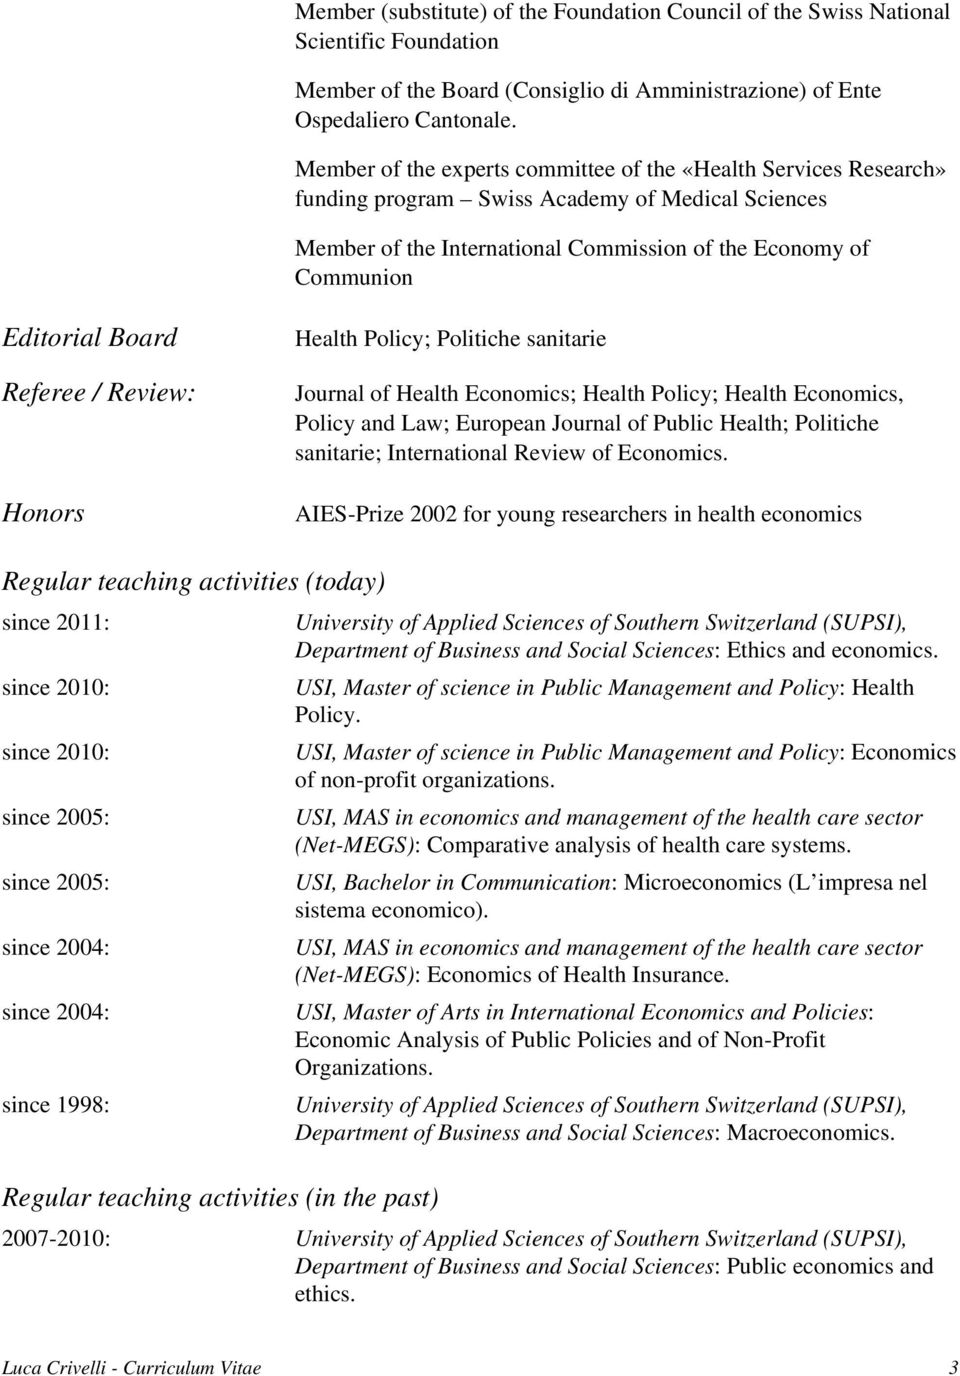 Referee / Review: Honors Health Policy; Politiche sanitarie Journal of Health Economics; Health Policy; Health Economics, Policy and Law; European Journal of Public Health; Politiche sanitarie;